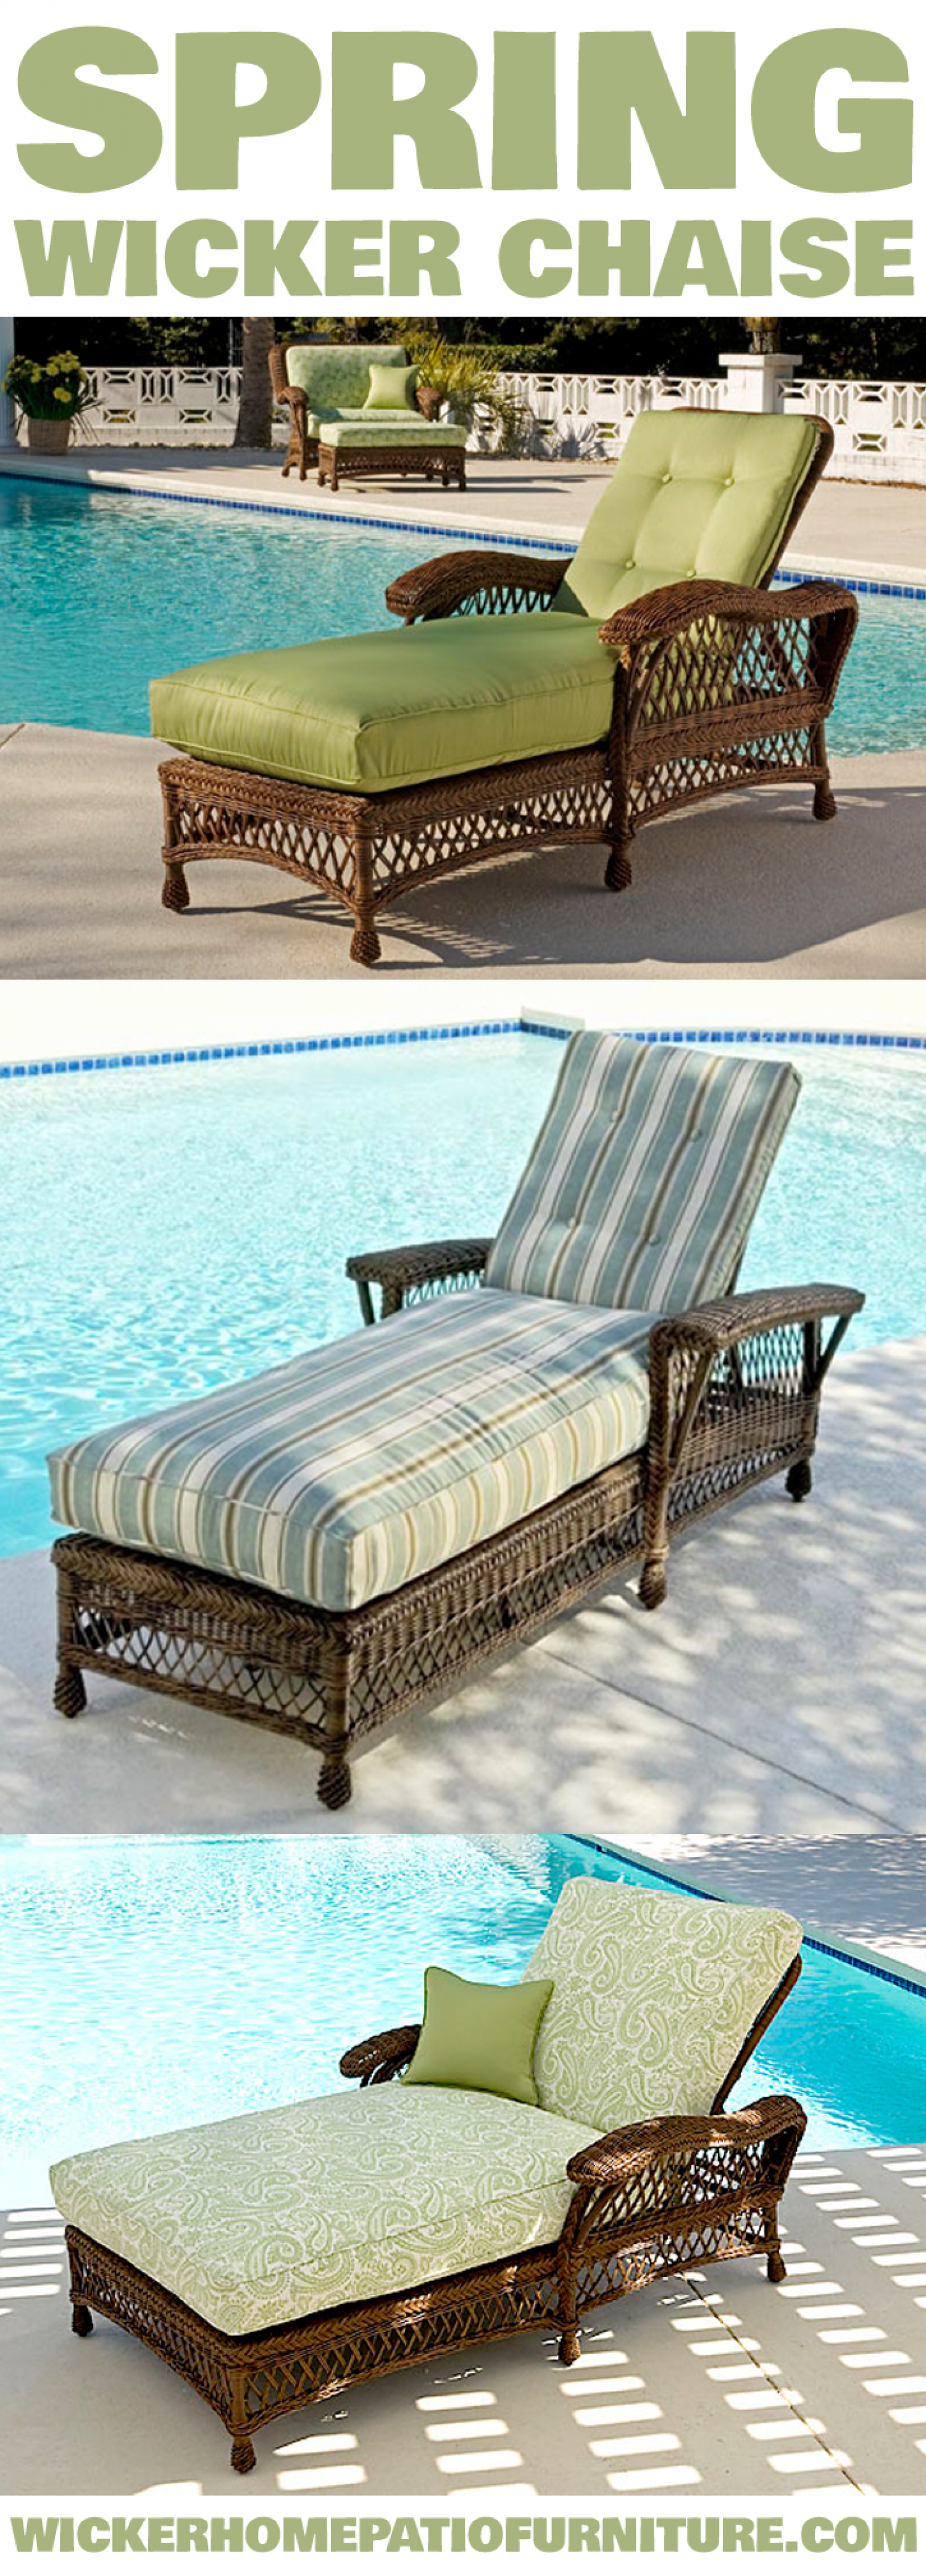 Spring Wicker Chaise Infographic